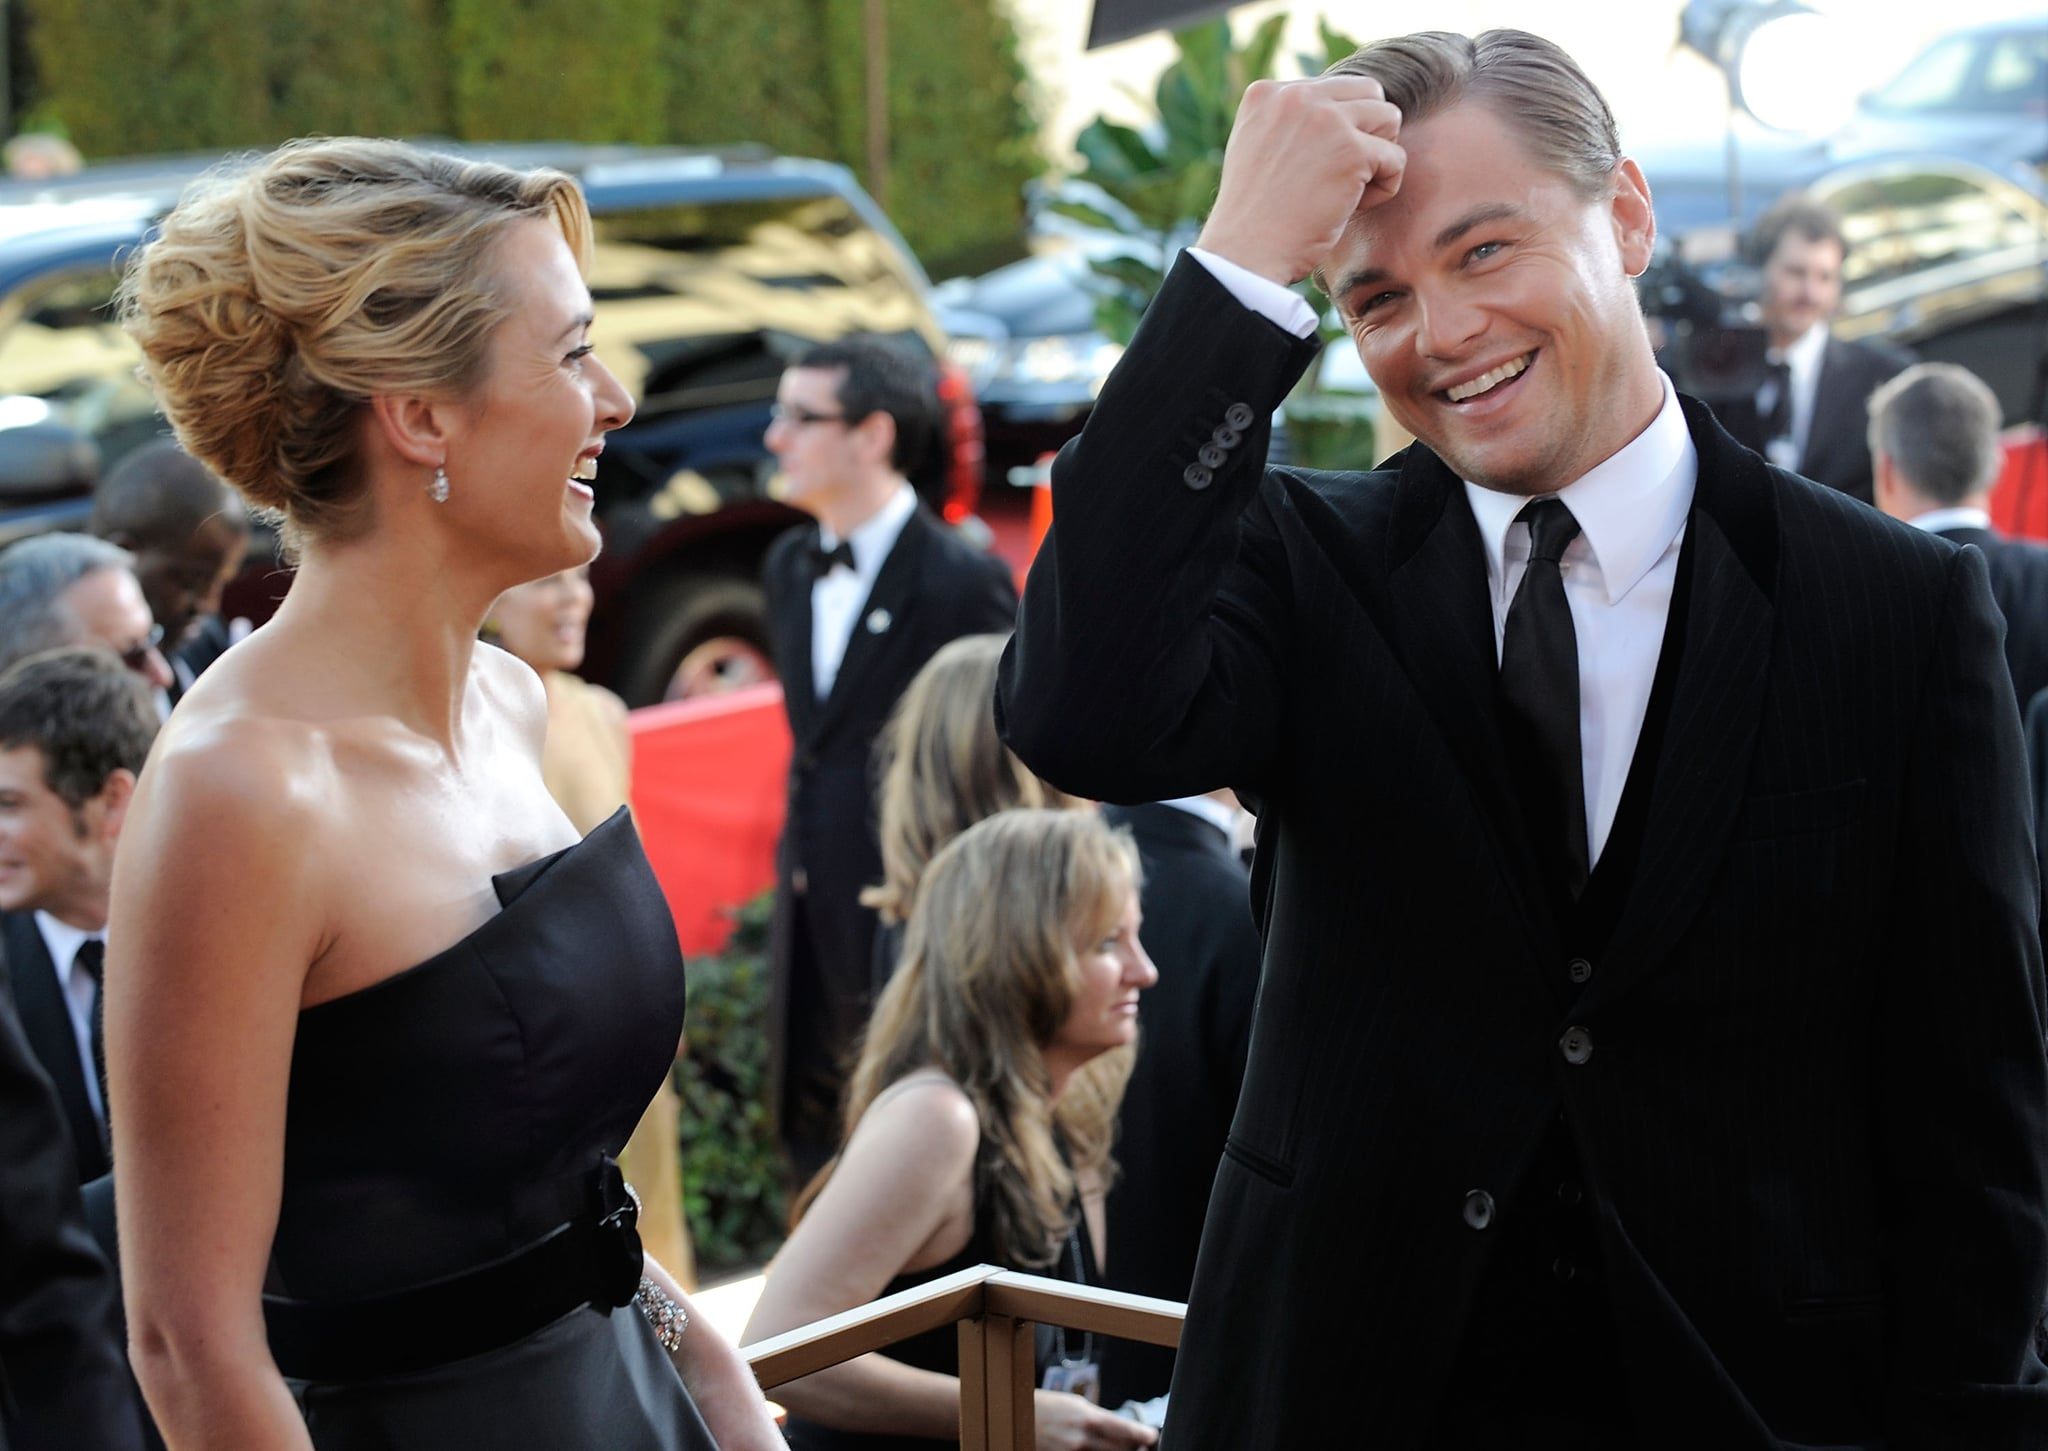 """The adorableness didn't stop there, since Leo gushed to Ryan Seacrest on the 2009 Golden Globes red carpet: """"We've been great friends for a long period of time. We were actively looking for something to do together. It felt really natural. She's my homie.""""  Things got even sweeter inside the show, when Kate won for her role in Revolutionary Road and included a heartfelt message to Leo in her acceptance speech."""